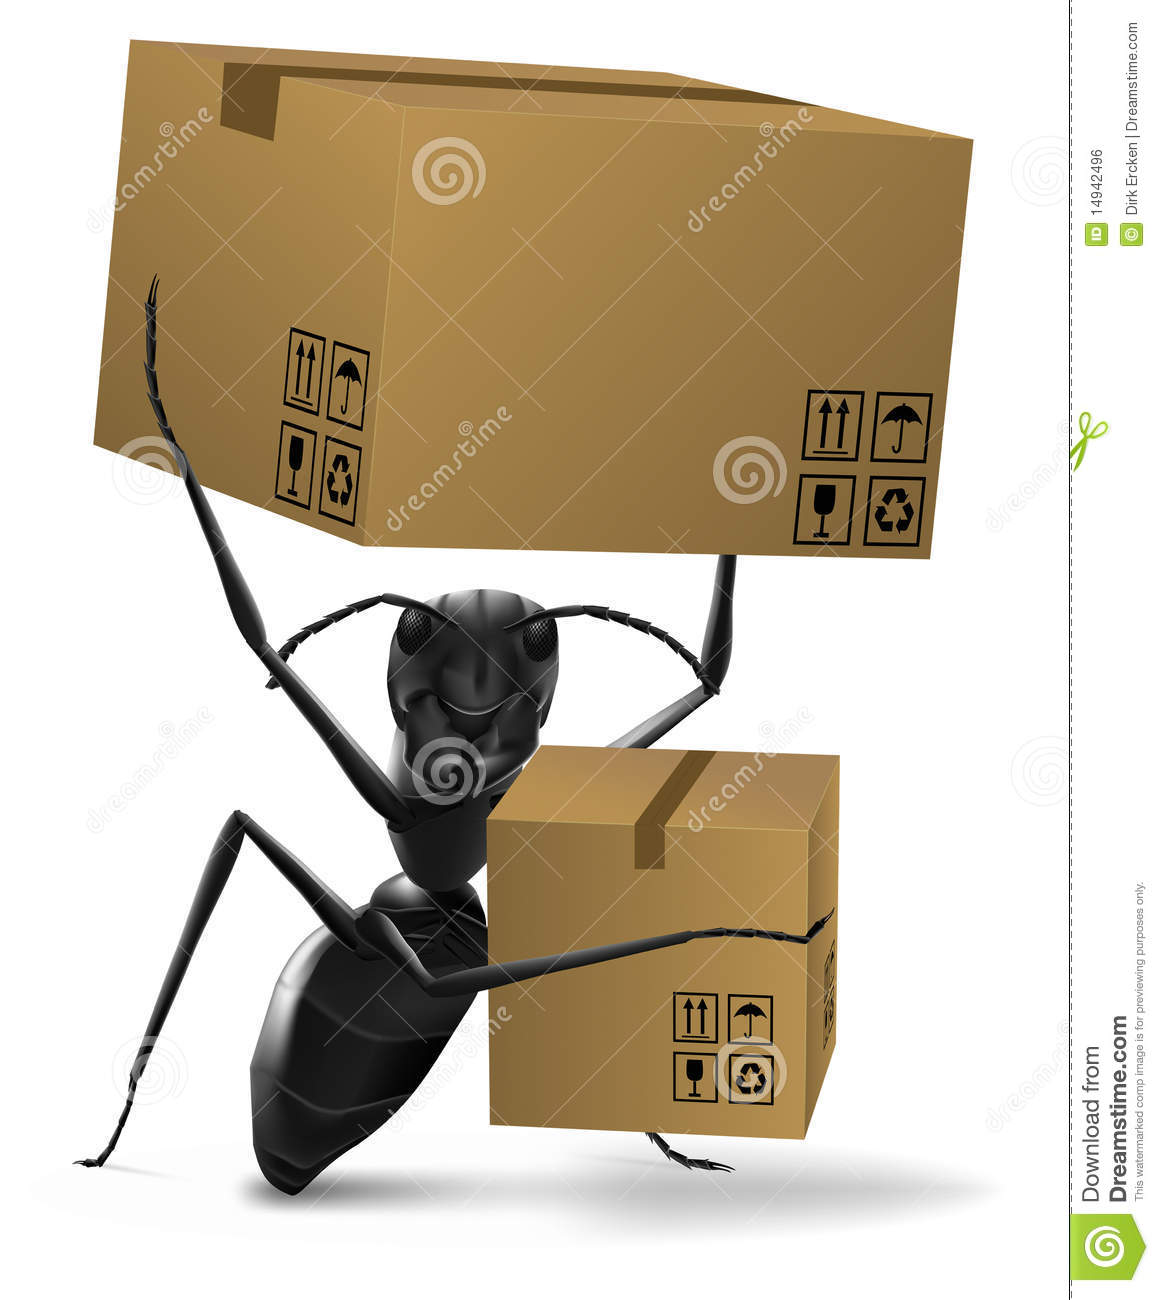 Ant cardboard box deliver or shipping